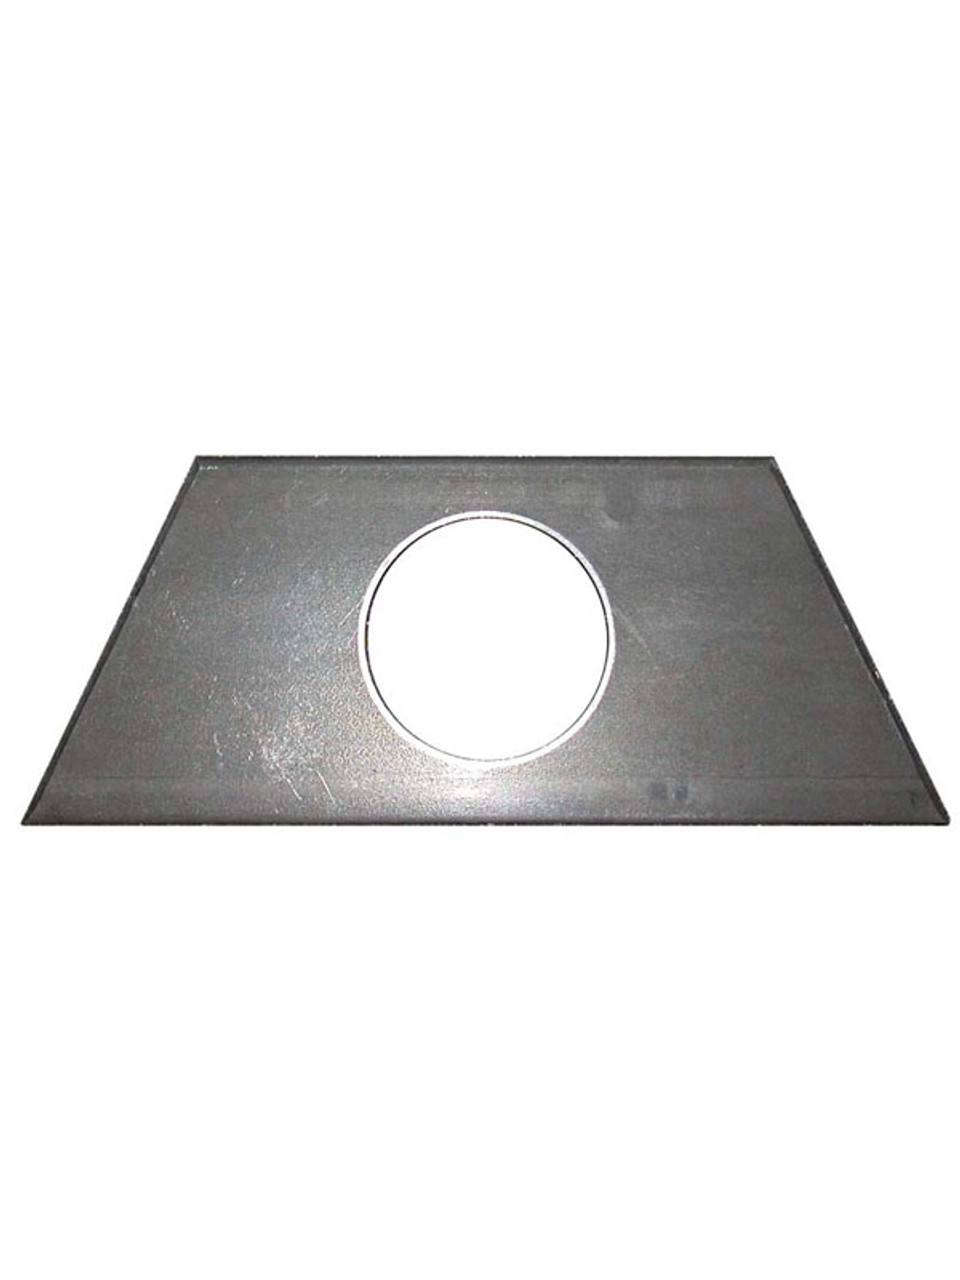 "80560 --- Bottom Support Plate, Fits Jack with 1-7/8"" O.D. Outer Tube"